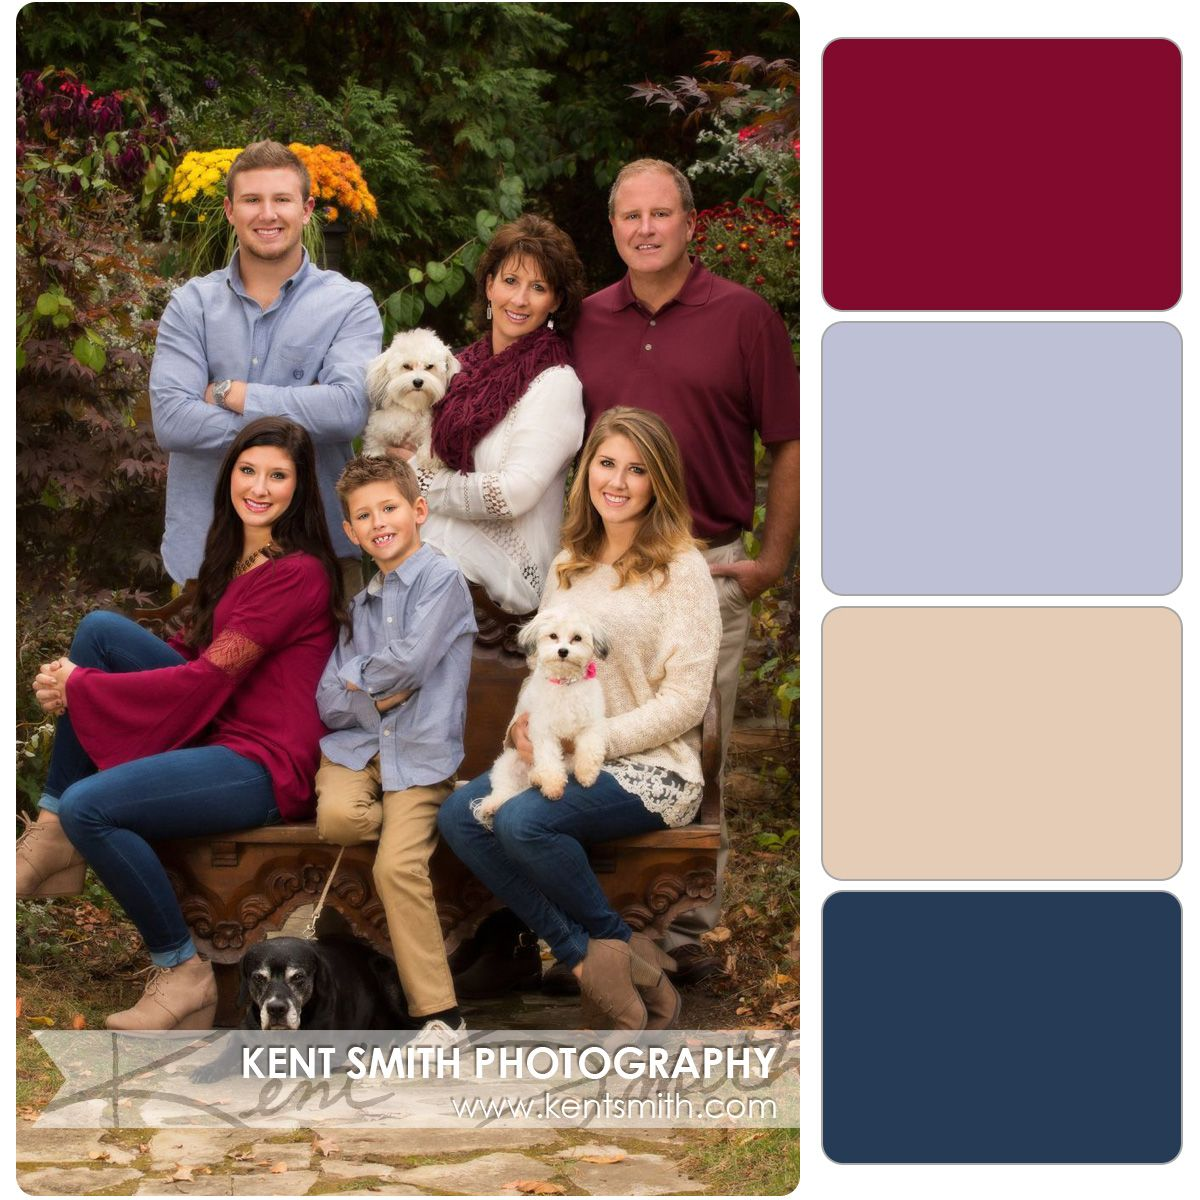 My favorite color combo so far #familyphotooutfits